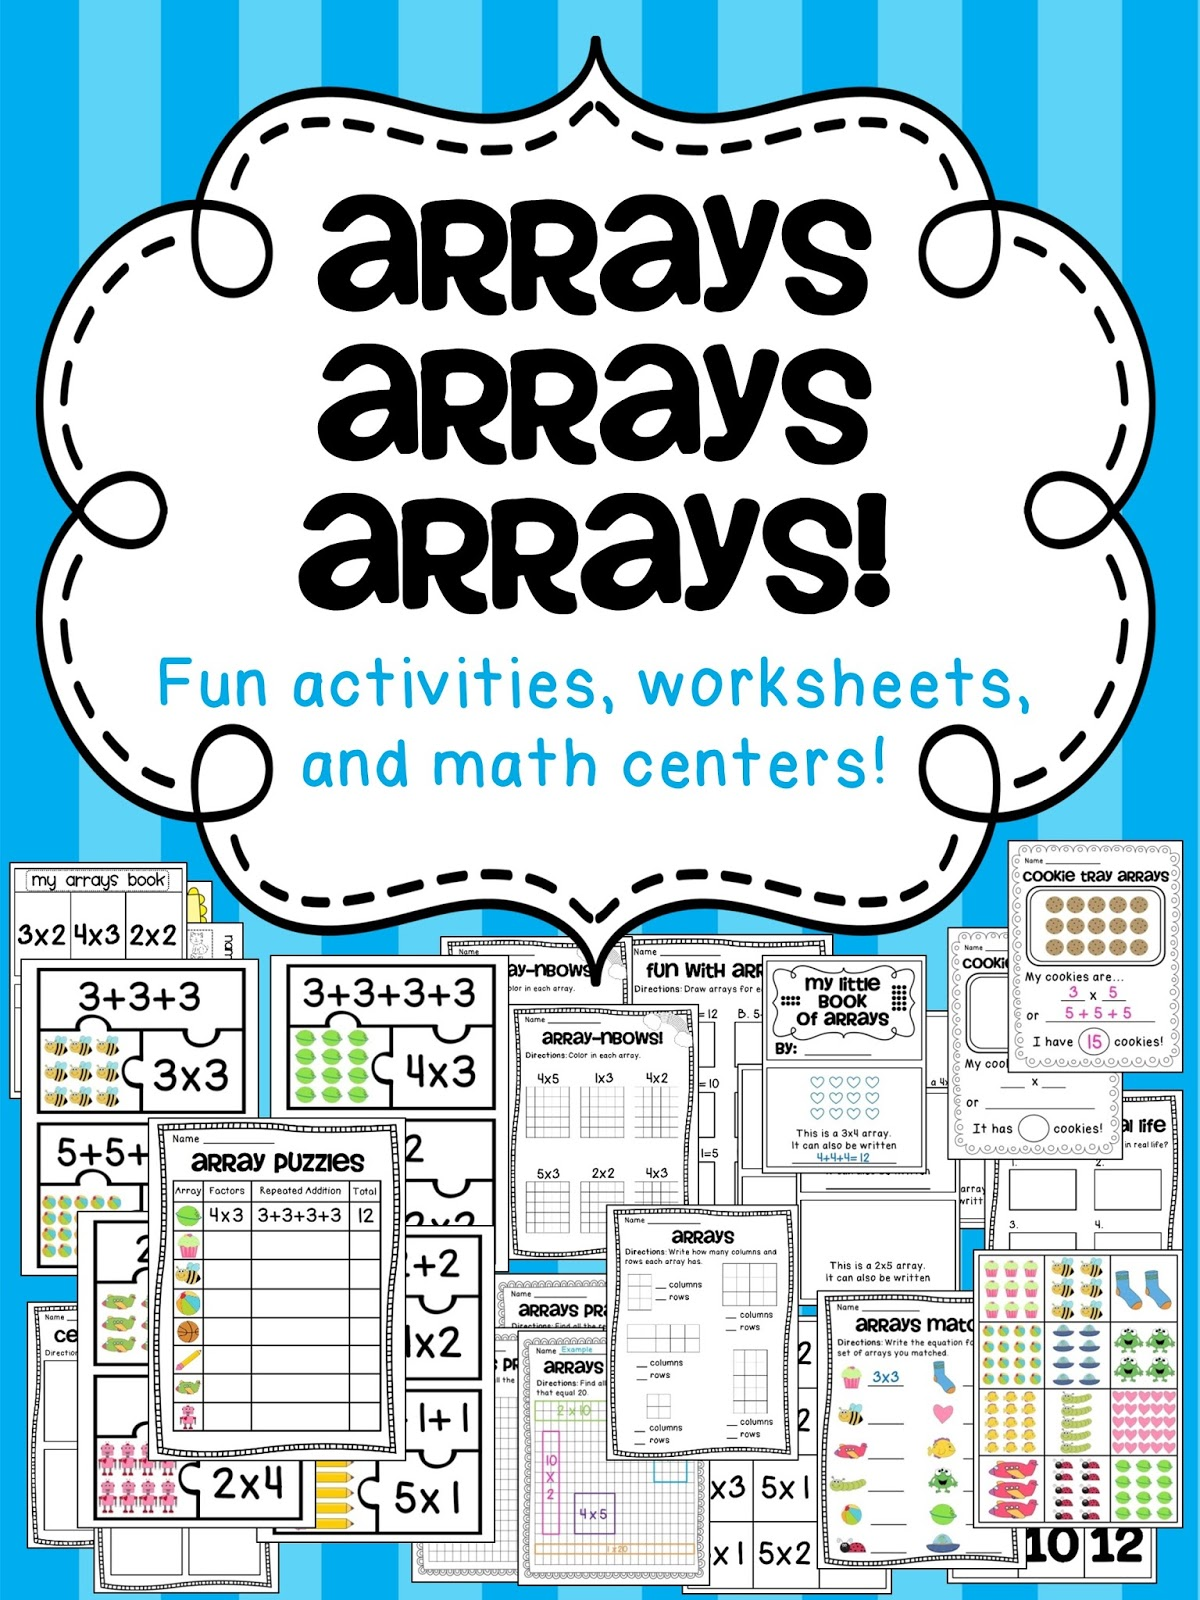 Worksheet How To Teach Multiplication To 3rd Grade miss giraffes class how to teach arrays